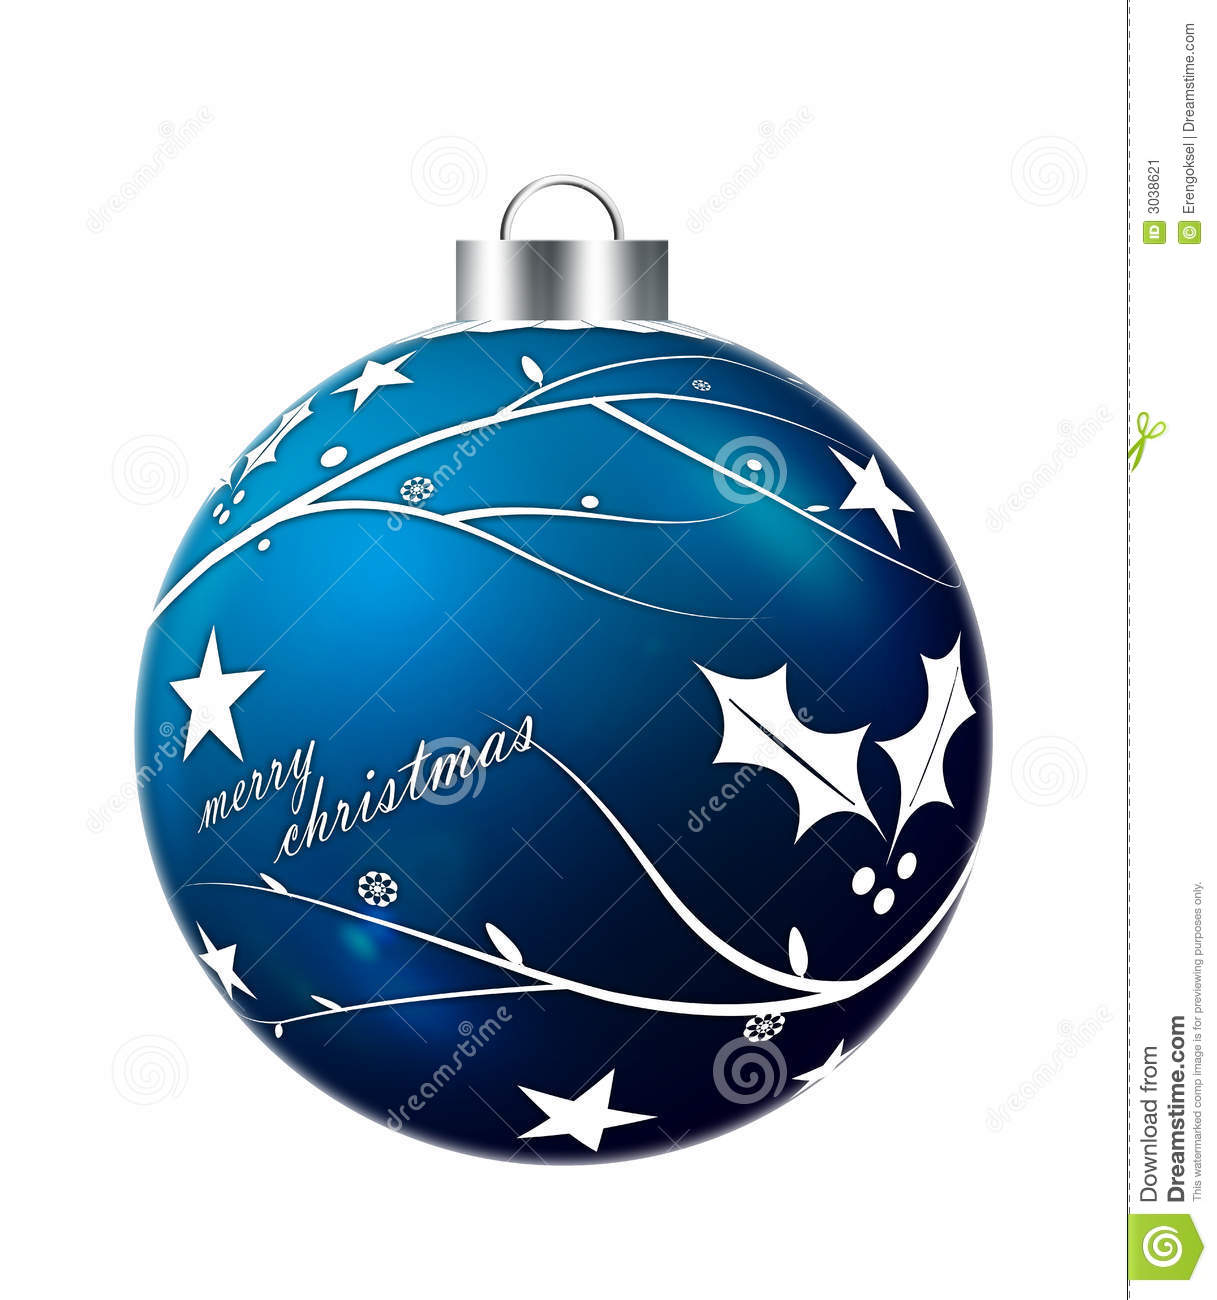 World globe christmas ornaments - Ball Blue Christmas Ornament